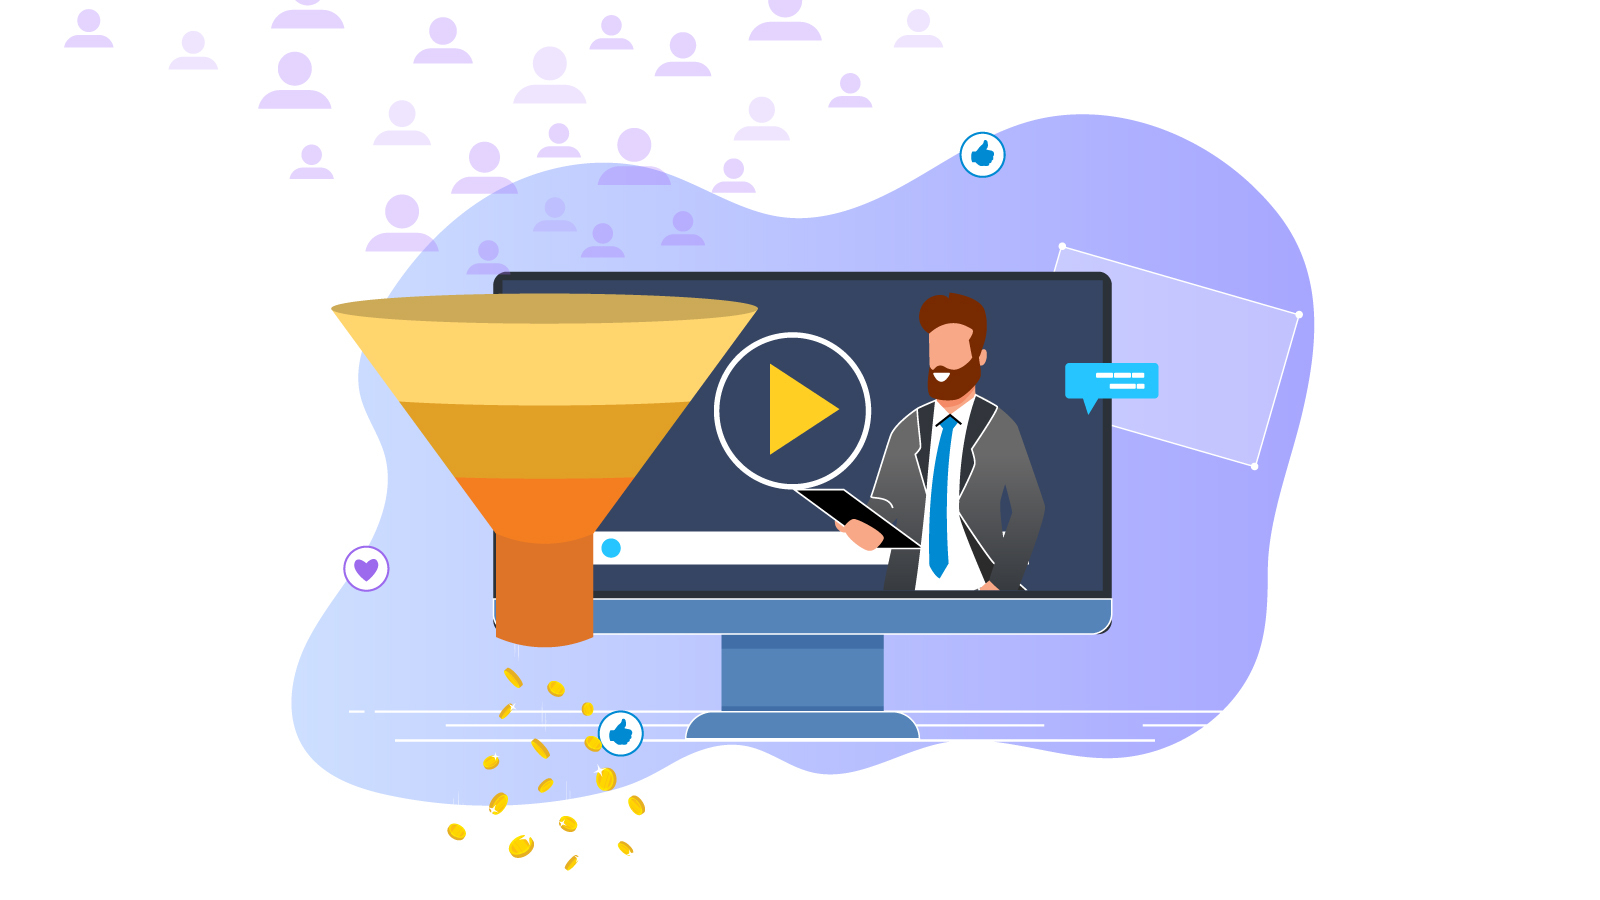 How To Build An Effective Video Marketing Sales Funnel